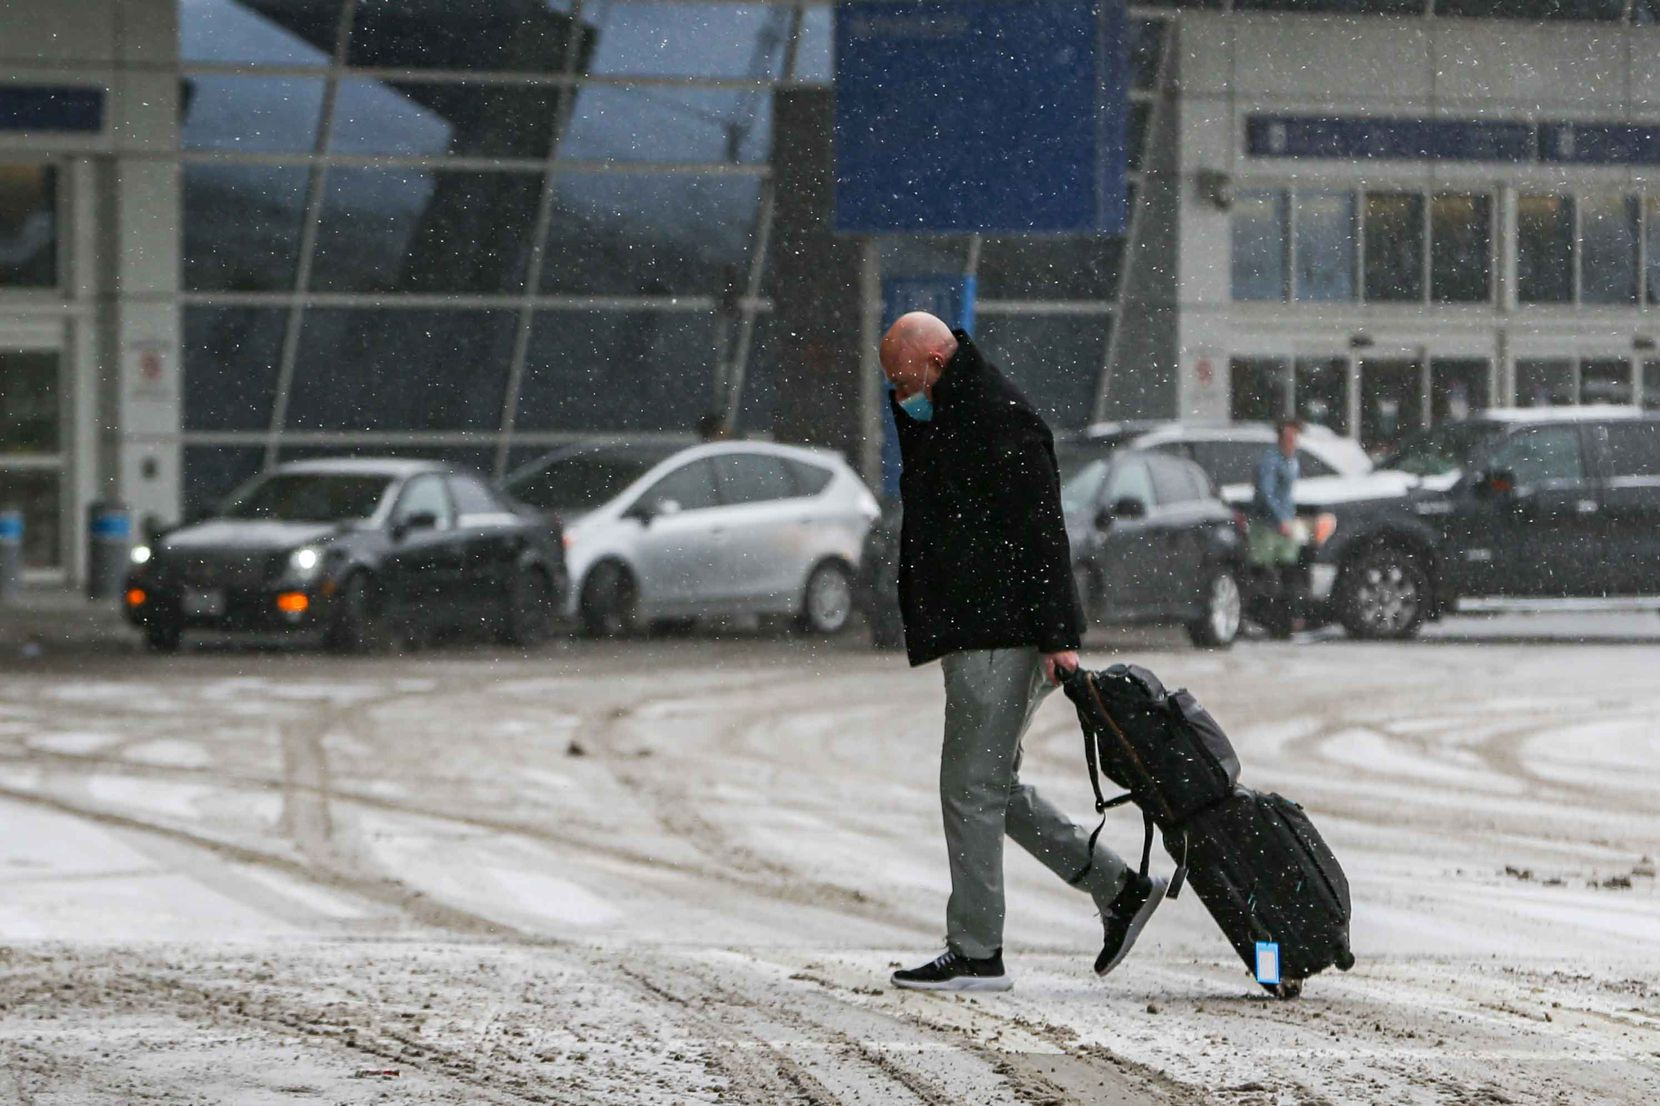 Snow, ice decend over DFW International Airport as American cancel hundreds of flights in Irving on Sunday, February 14, 2021.